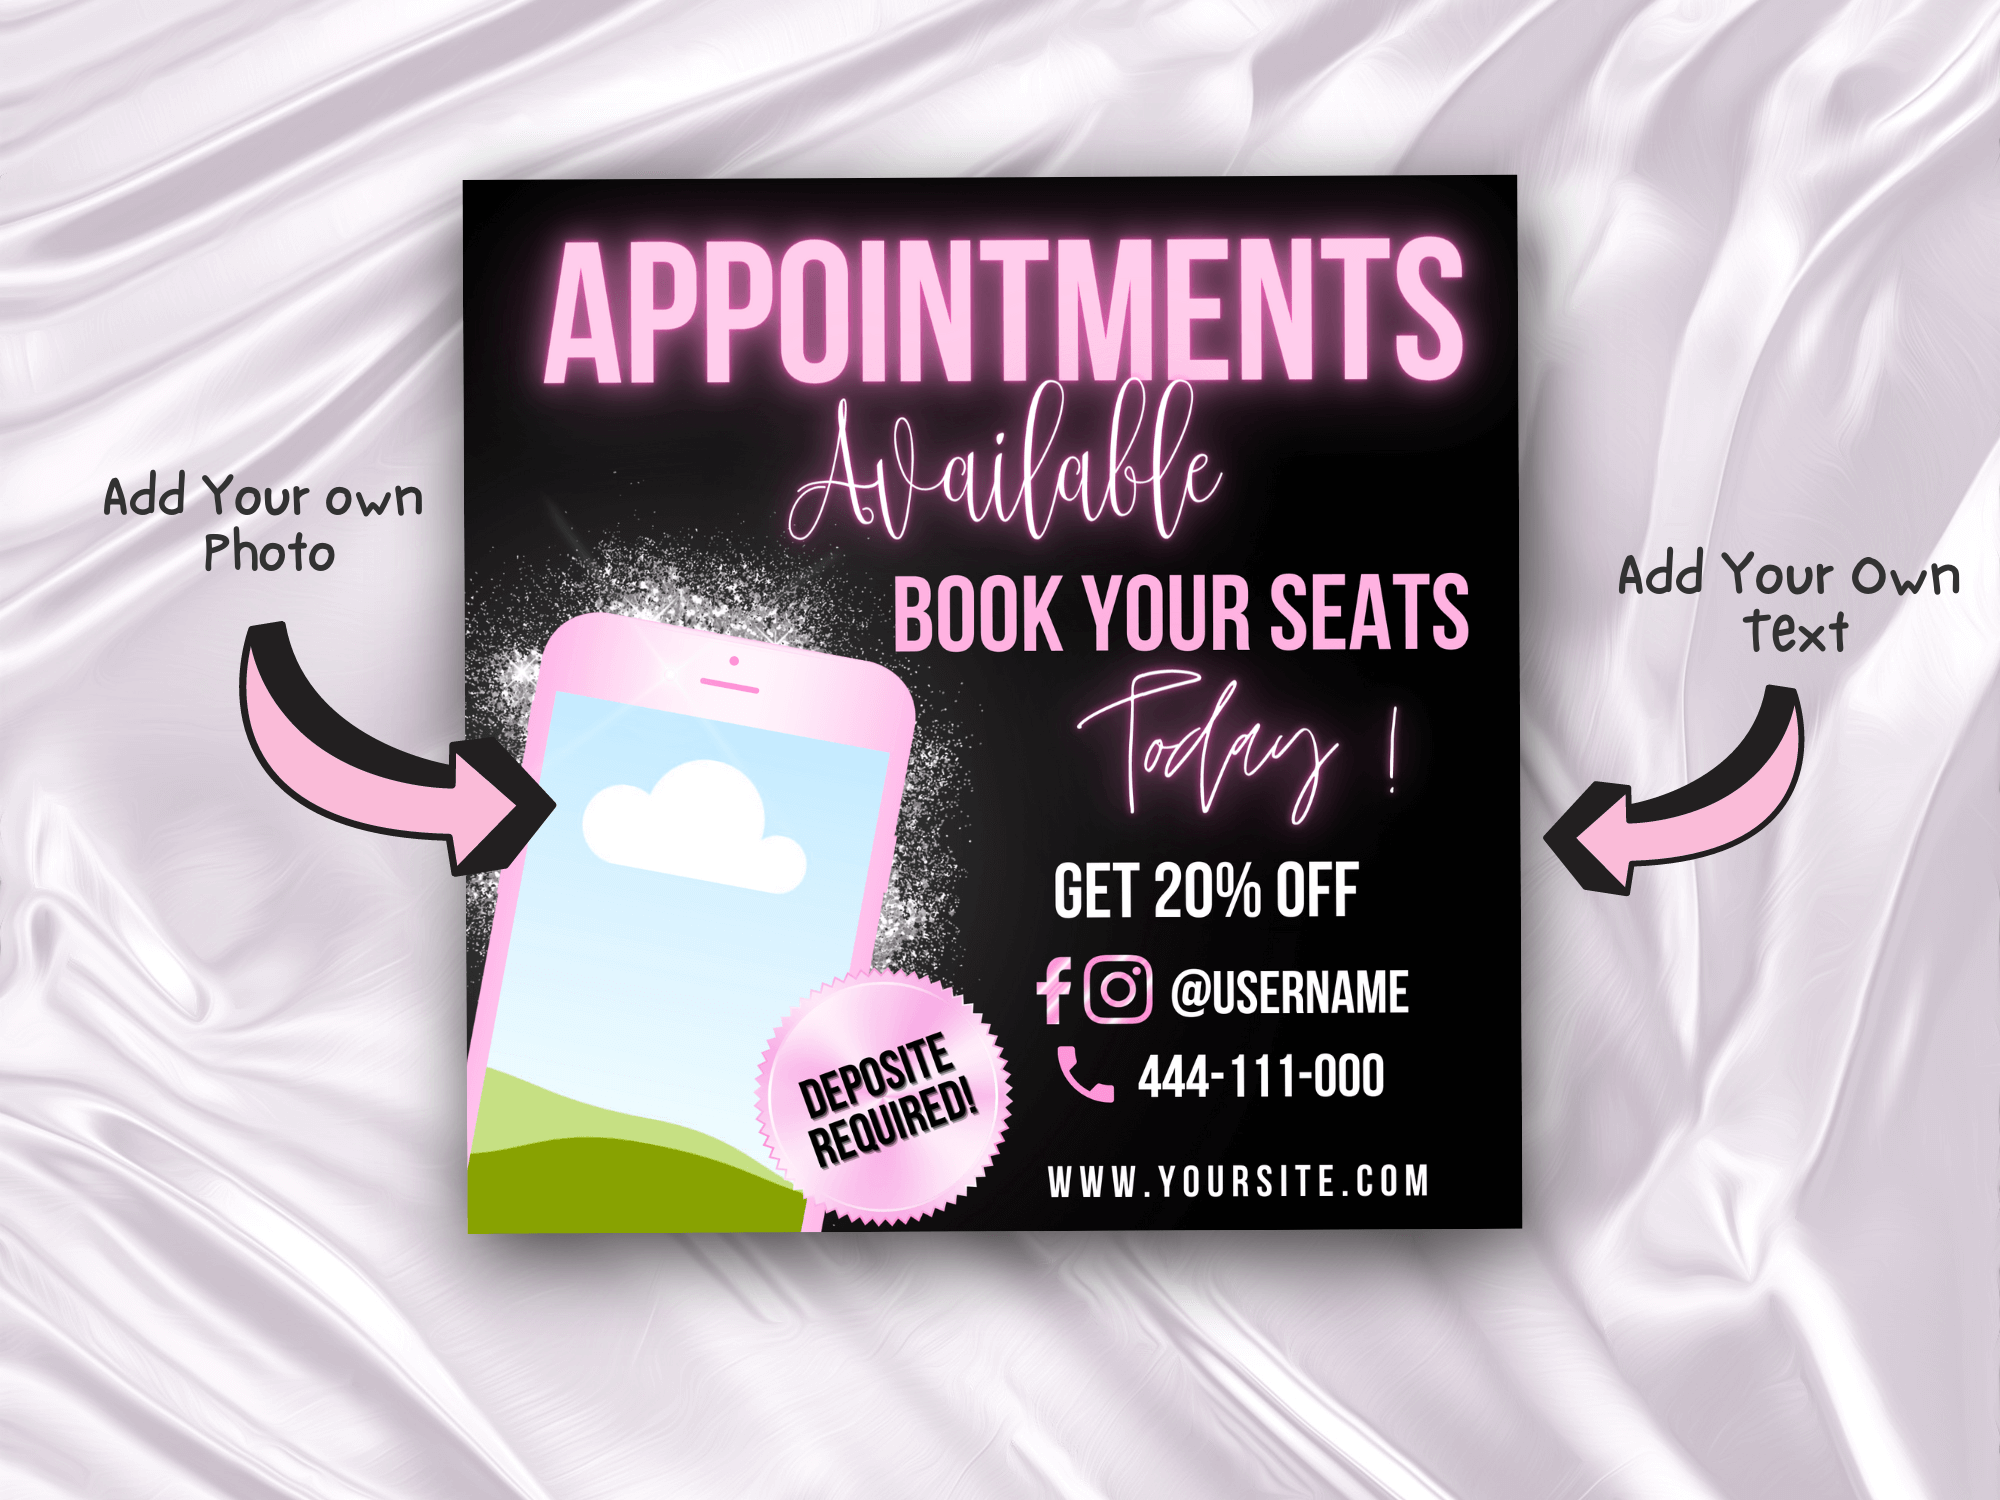 Appointments Available Flyer, Insta...